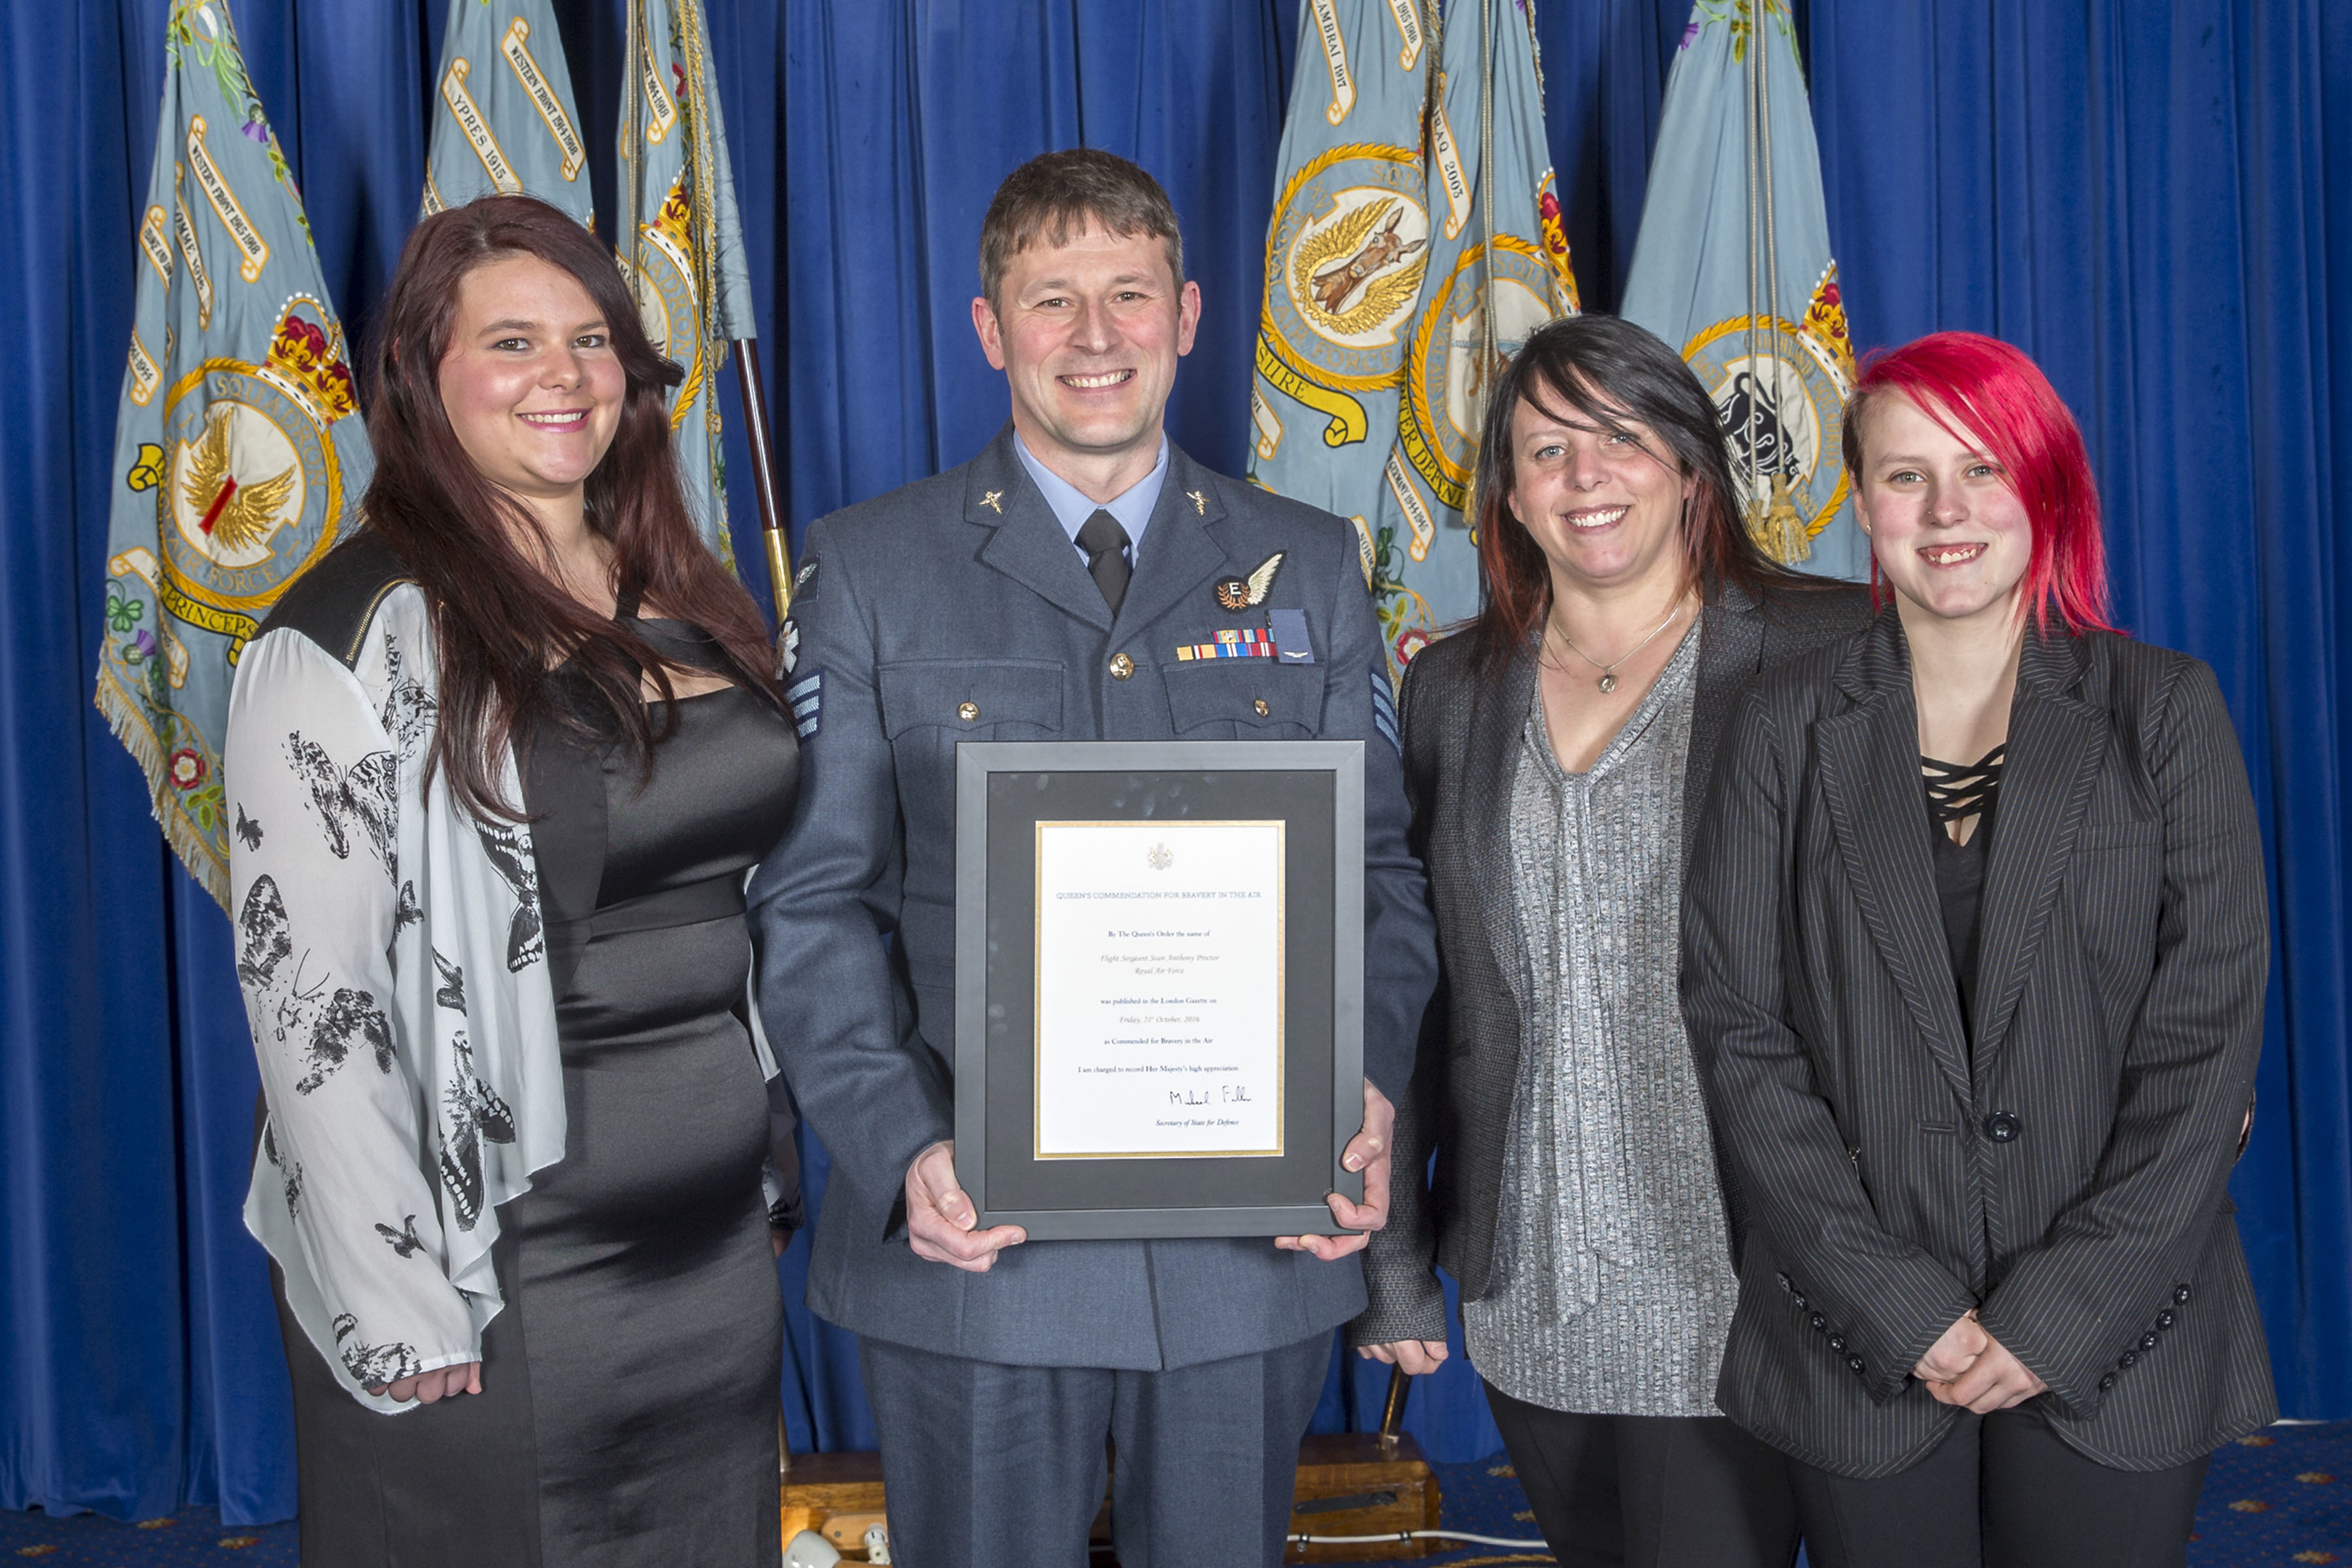 Sgt Proctor, who lives in Forres with his wife Elizabeth and daughters Shannon, pictured far left, and Caitlyn, far right, after being presented with the bravery award.